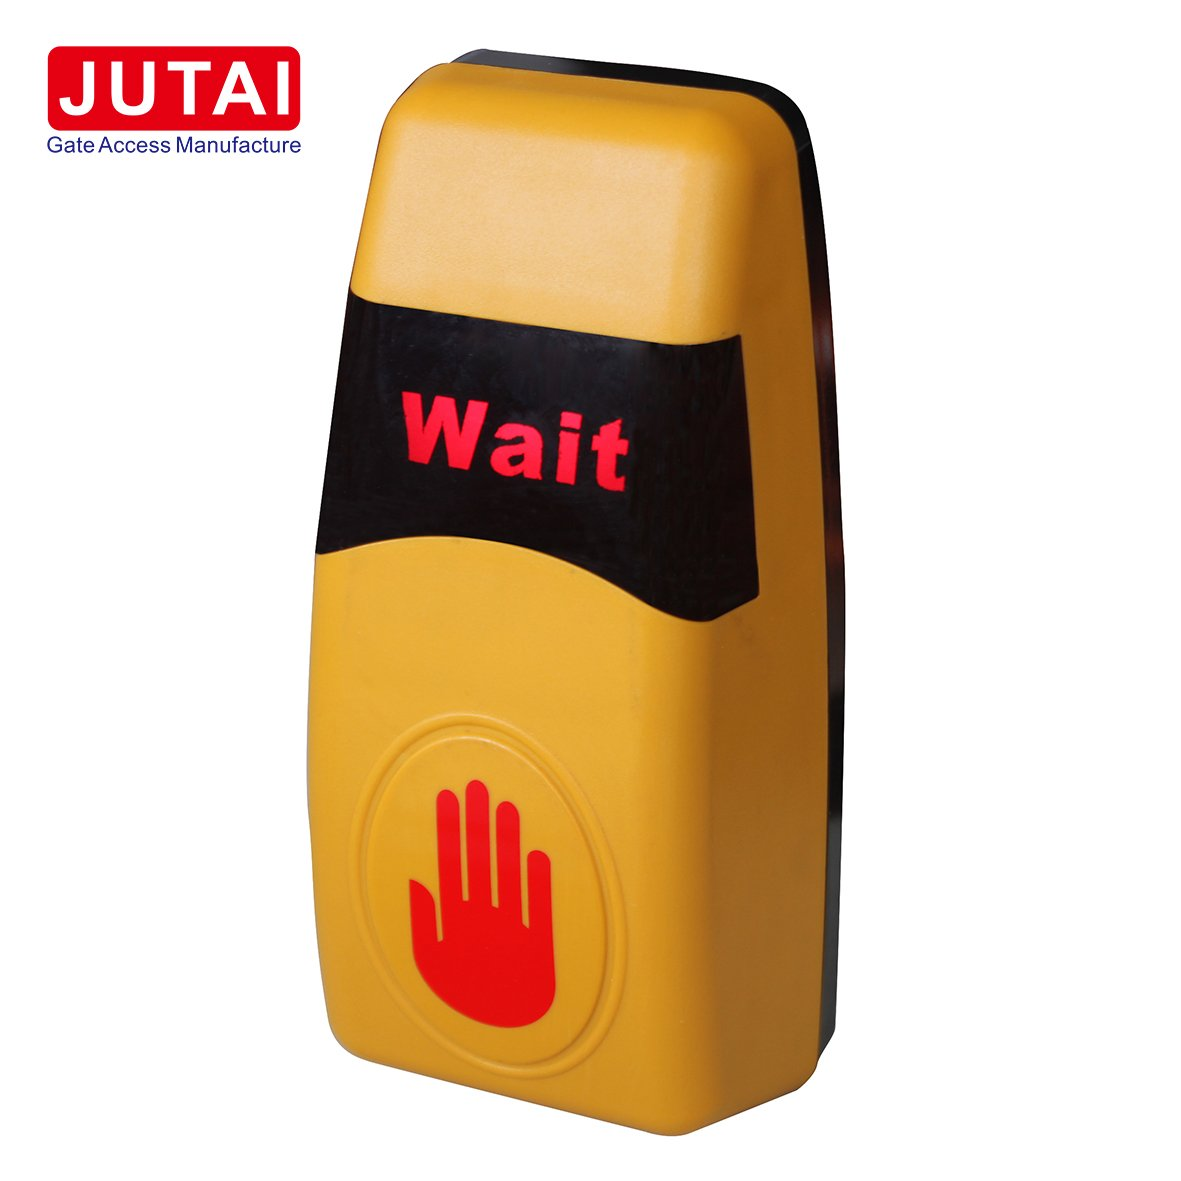 JUTAI non-contact touchless button for gate access